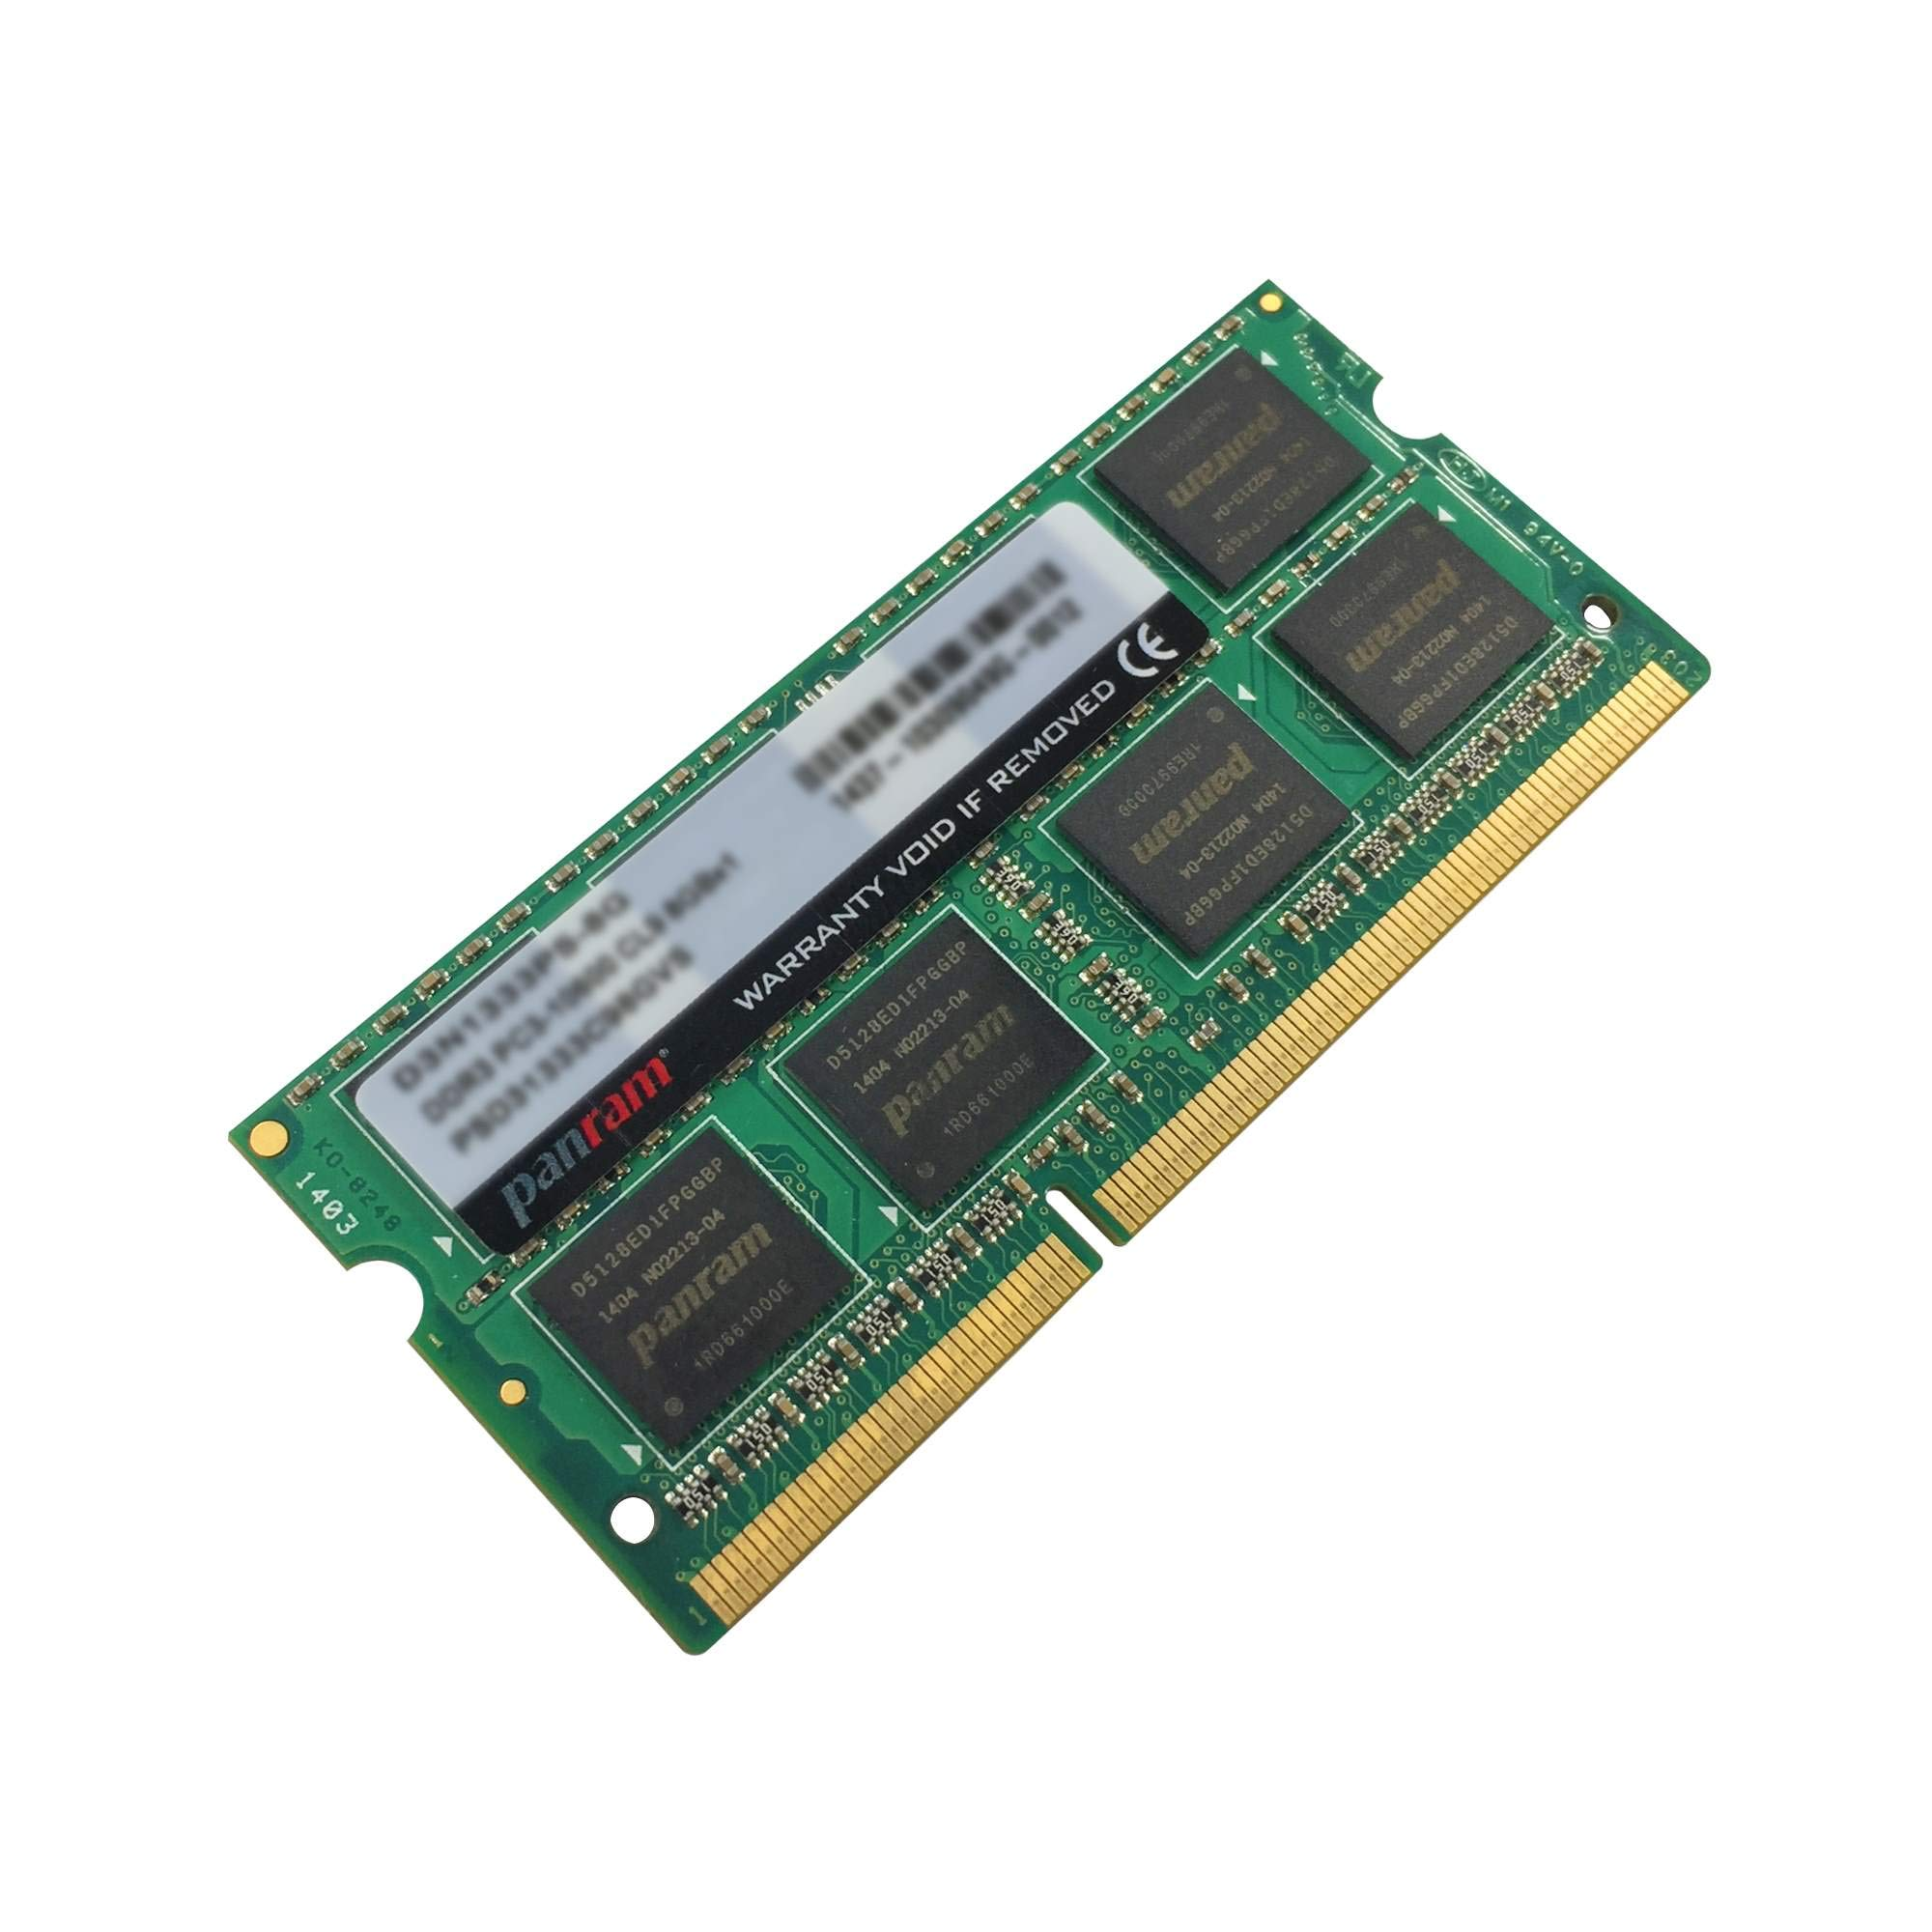 CFD販売 ノートPC用メモリ PCL-12800 DDR3L-1600 4GB×1枚 1.35V対応 SO-DIMM 無期限保証 Panram D3N1600PS-L4G